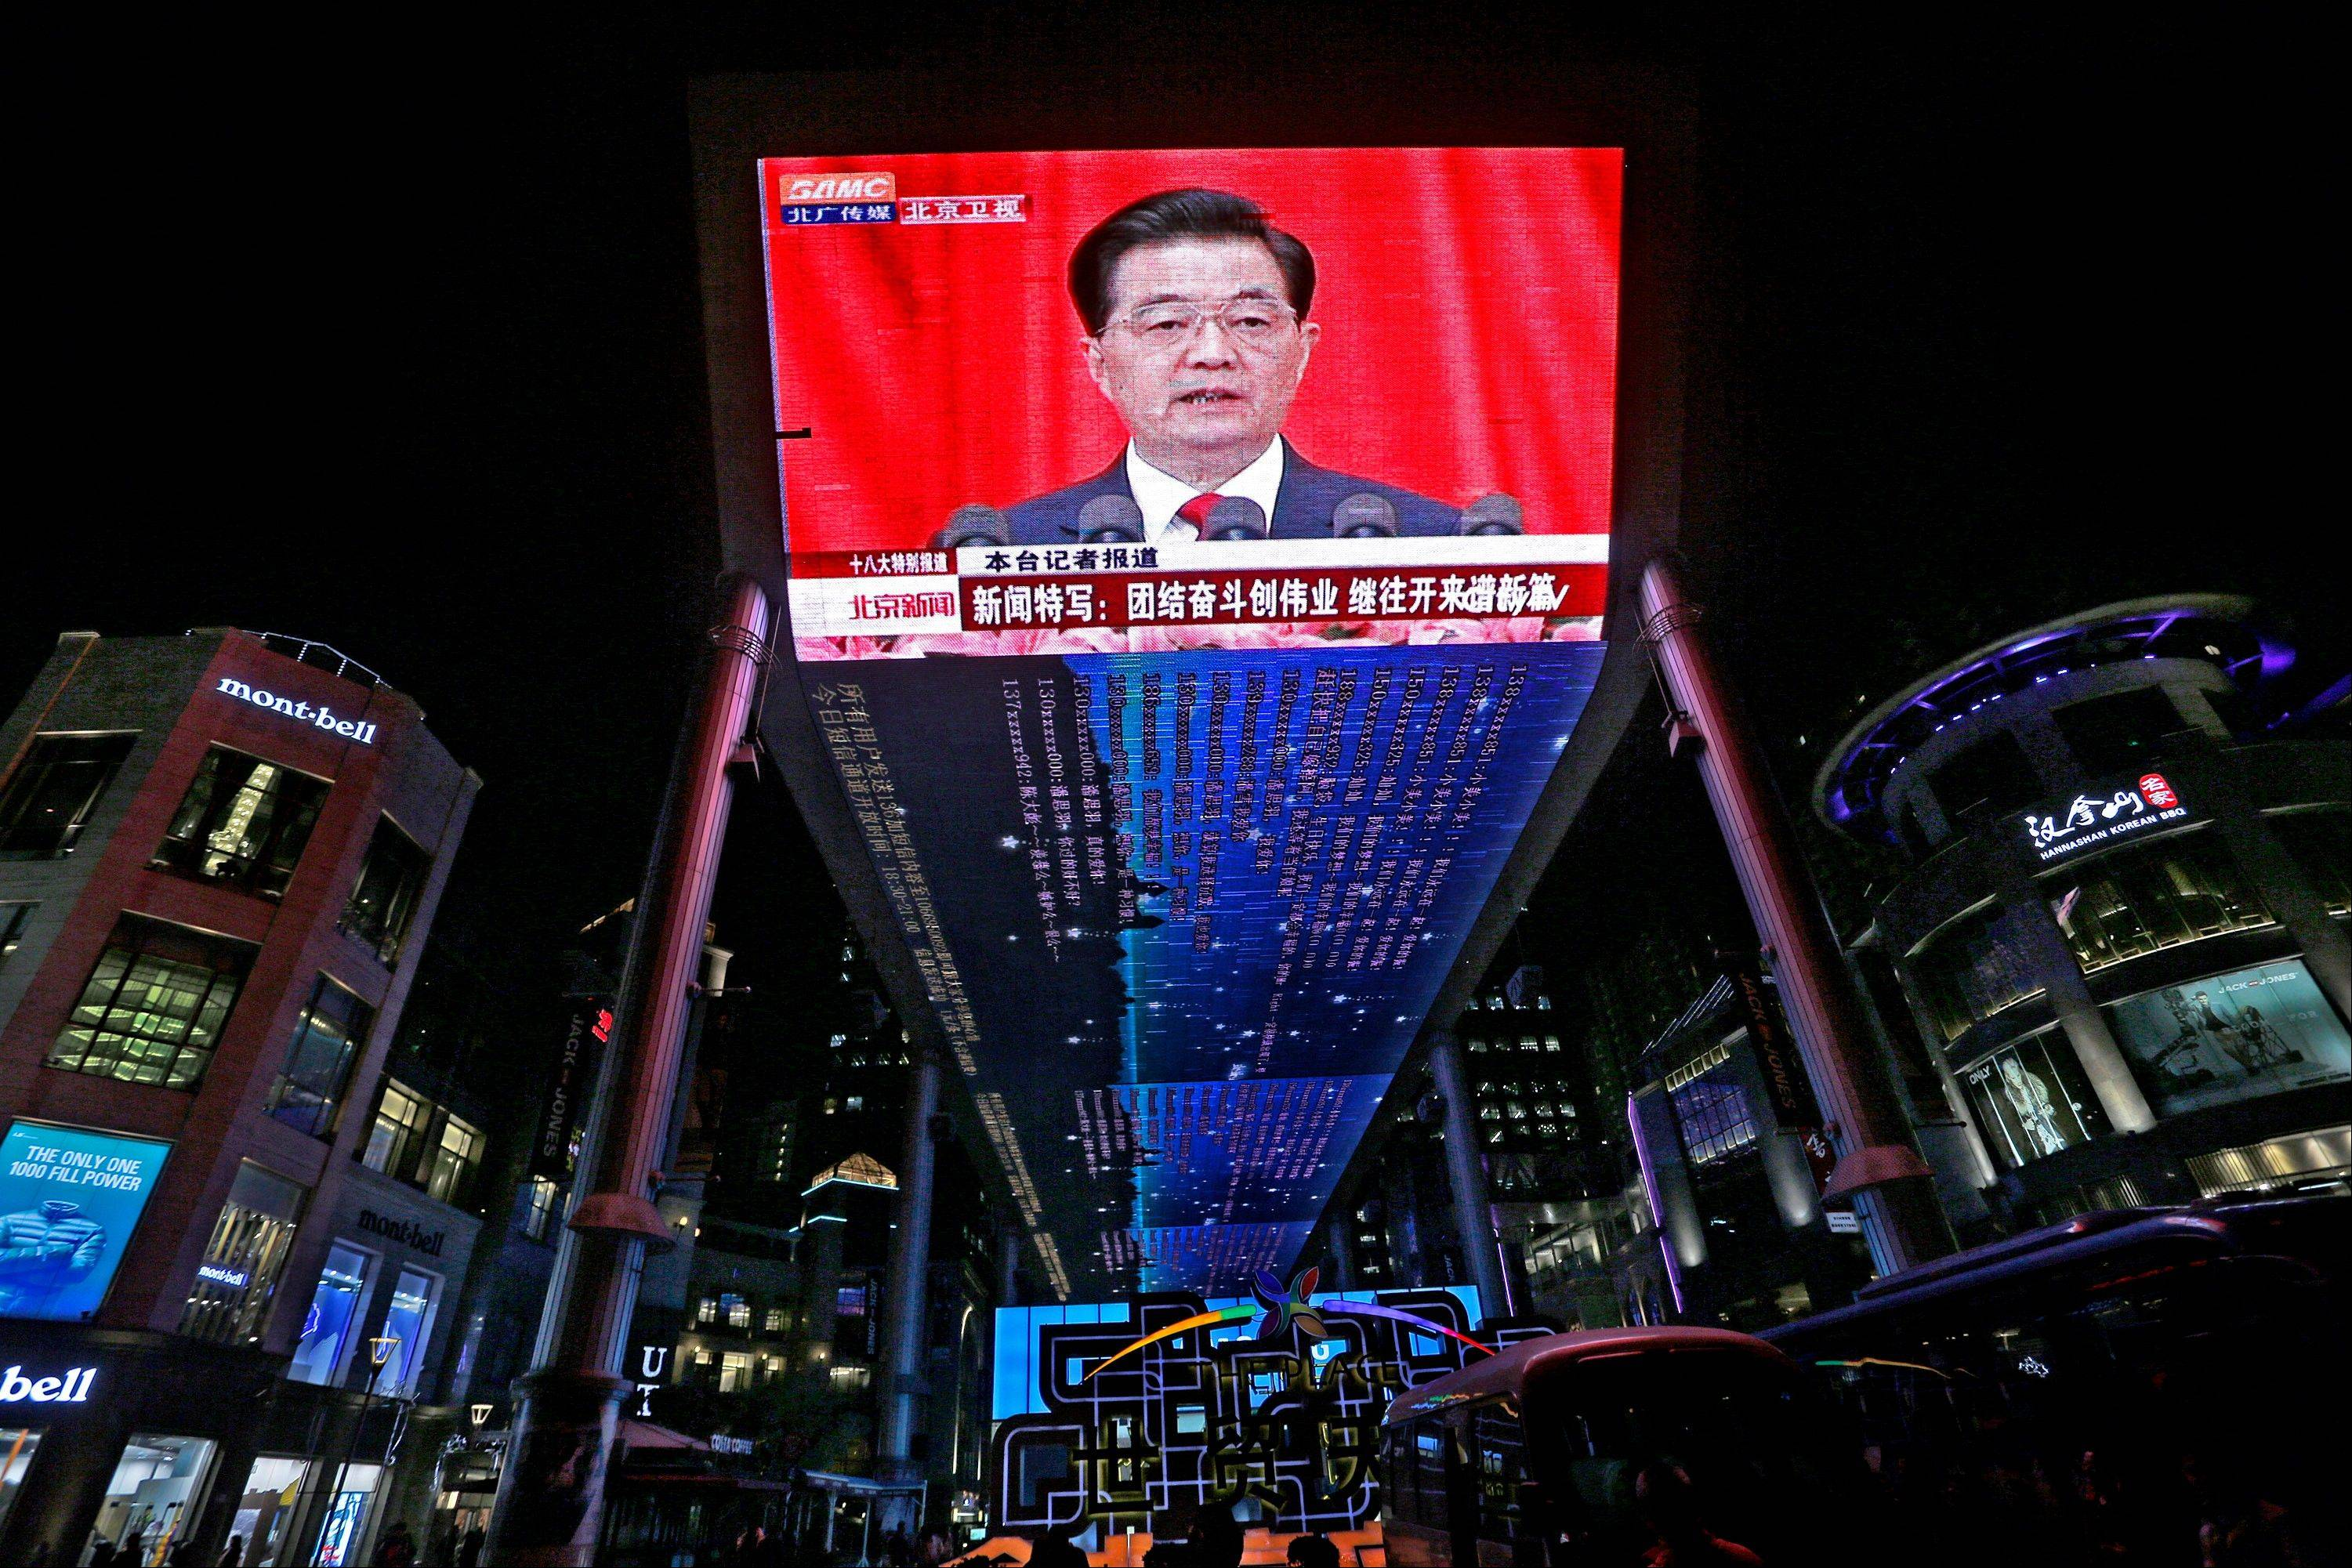 A huge screen shows a broadcast of Chinese President Hu Jintao speaking Thursday at the opening session of the 18th Communist Party Congress at the Great Hall of the People in Beijing.